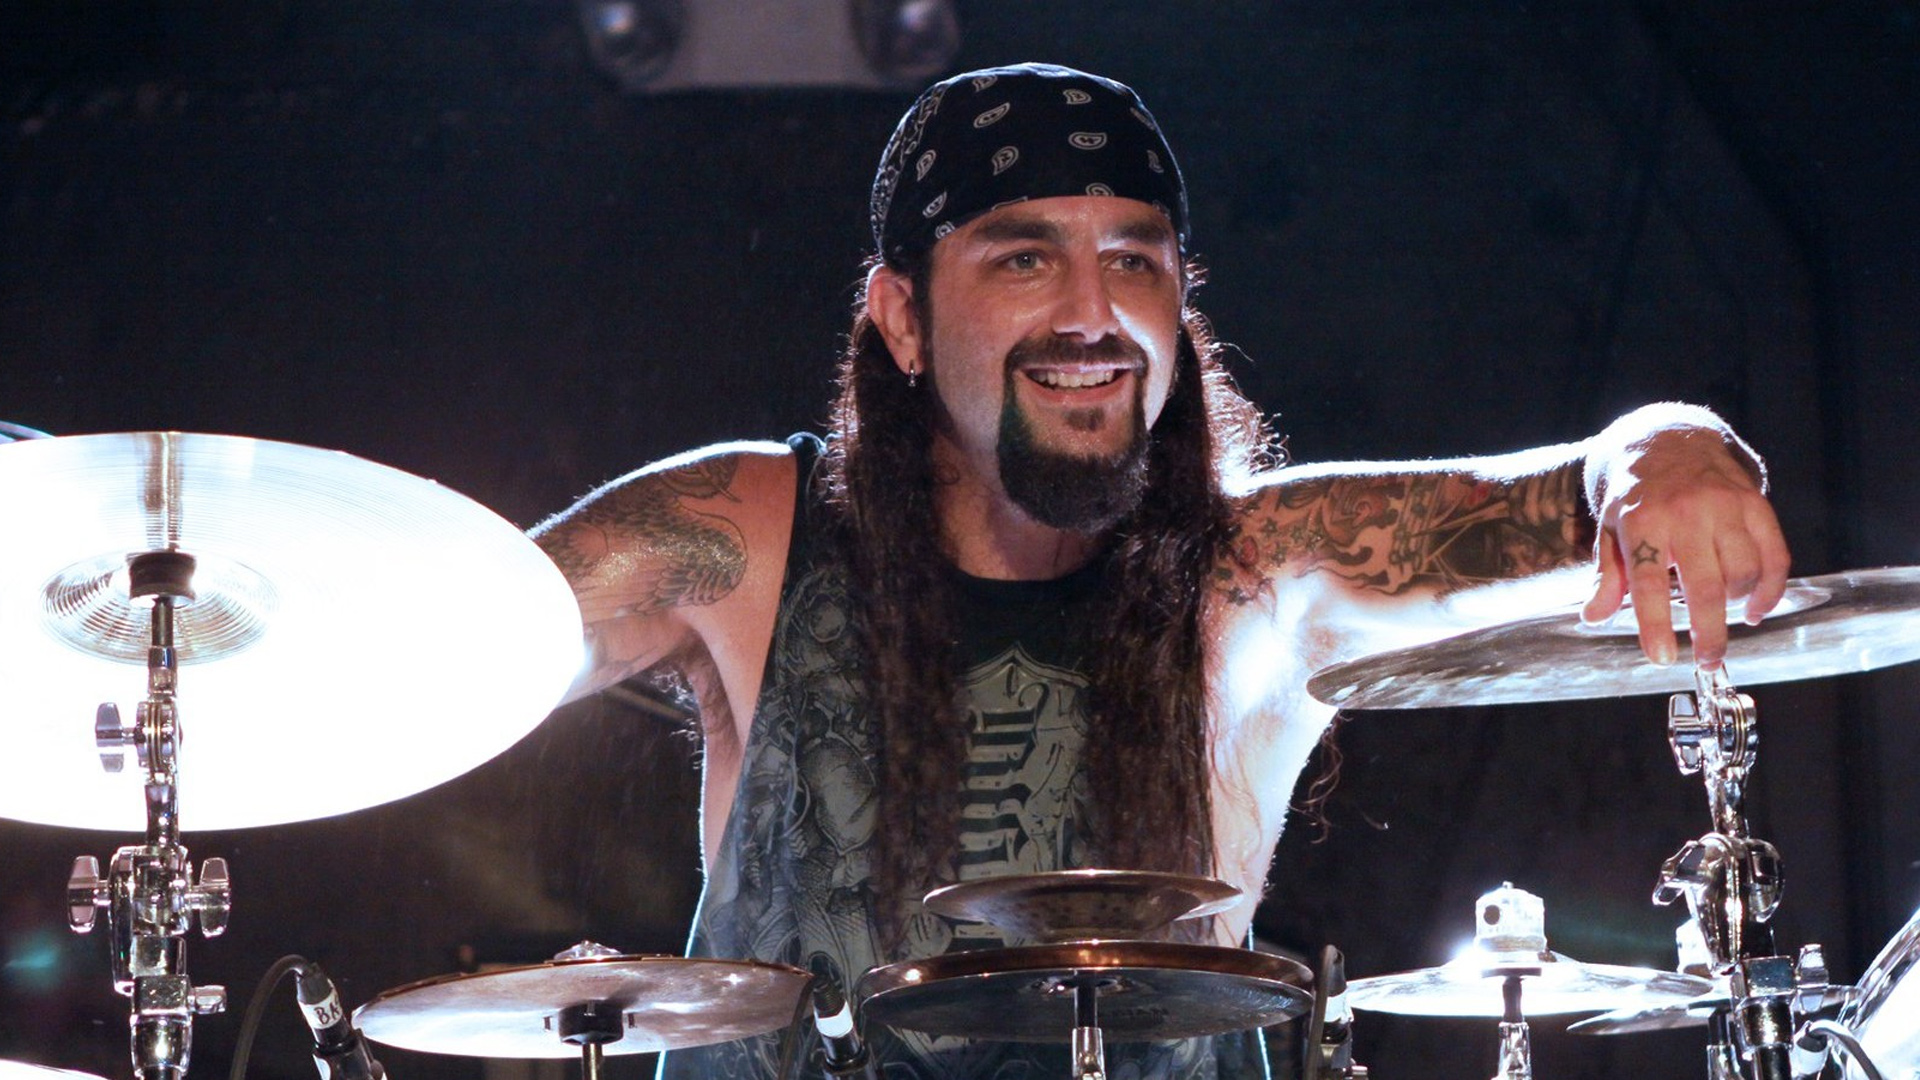 Mike-Portnoy-Dream-Theater